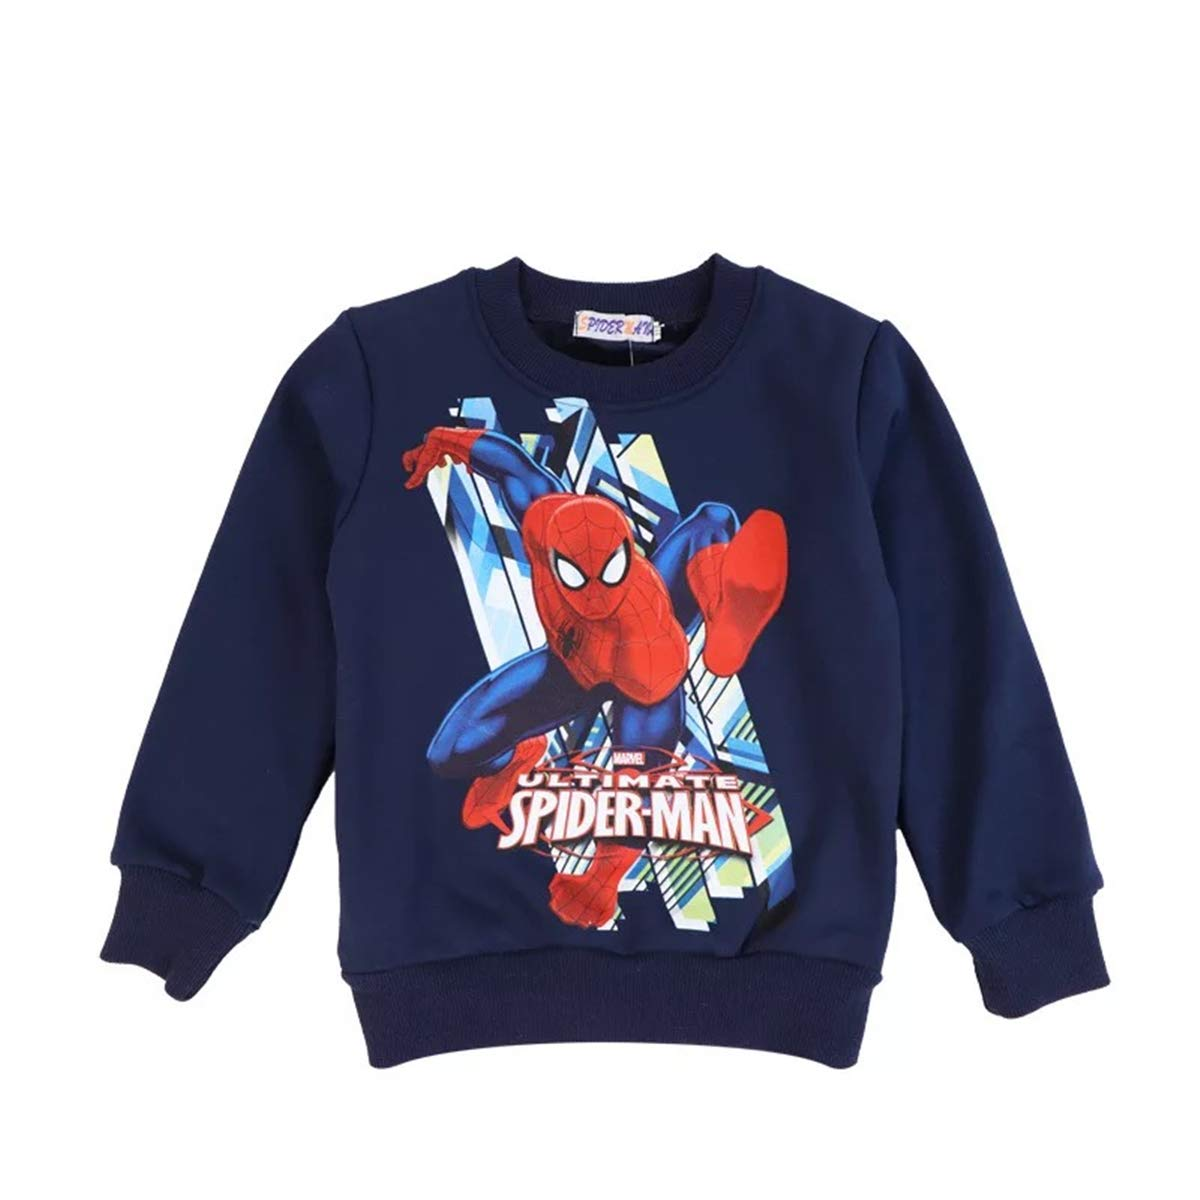 GD-SportBX Spider-Man Long Sleeve Pullover Sweater for Boys Kids Superhero Crewneck Sweatshirt Navy Blue